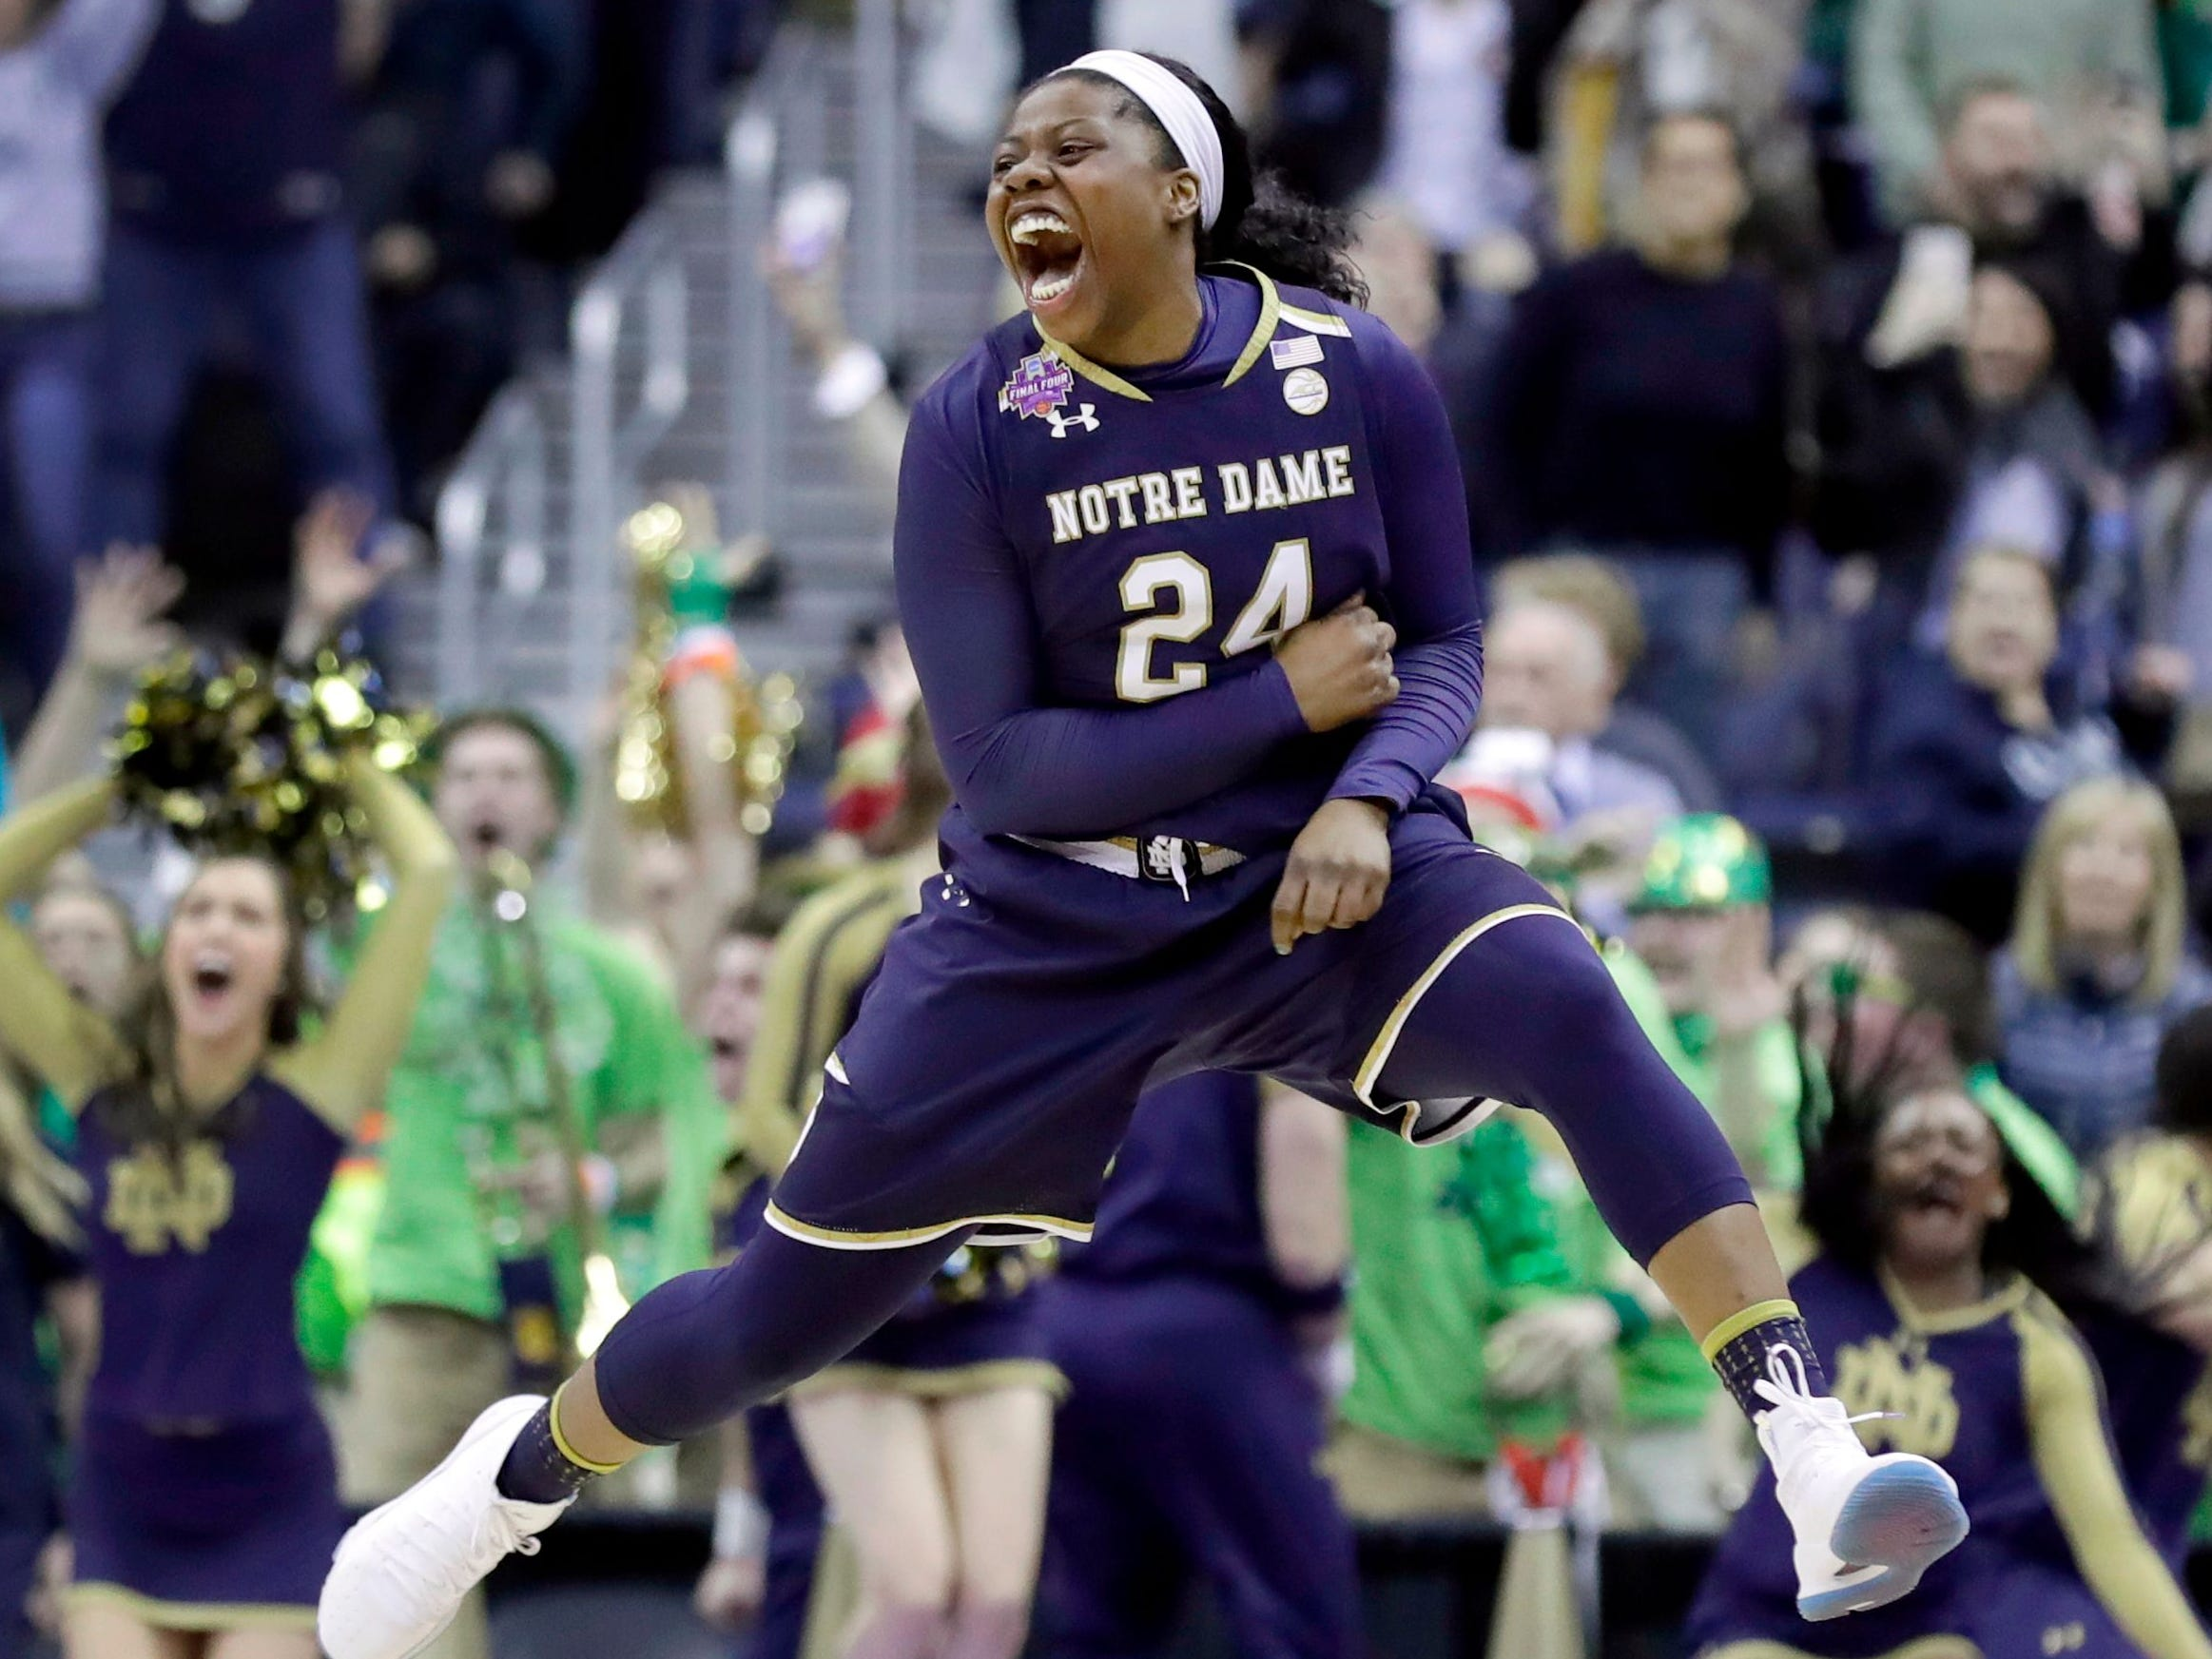 Notre Dame's Arike Ogunbowale, a 2015 Divine Savior Holy Angels graduate, celebrates after making a game-winning shot in overtime over Connecticut, 91,89, on March 30, 2018, to send the Irish to the national championship game. Two days later, Ogunbowale hit another game-winning shot - this time a 3-pointer against Mississippi State - that gave Notre Dame its second national title.